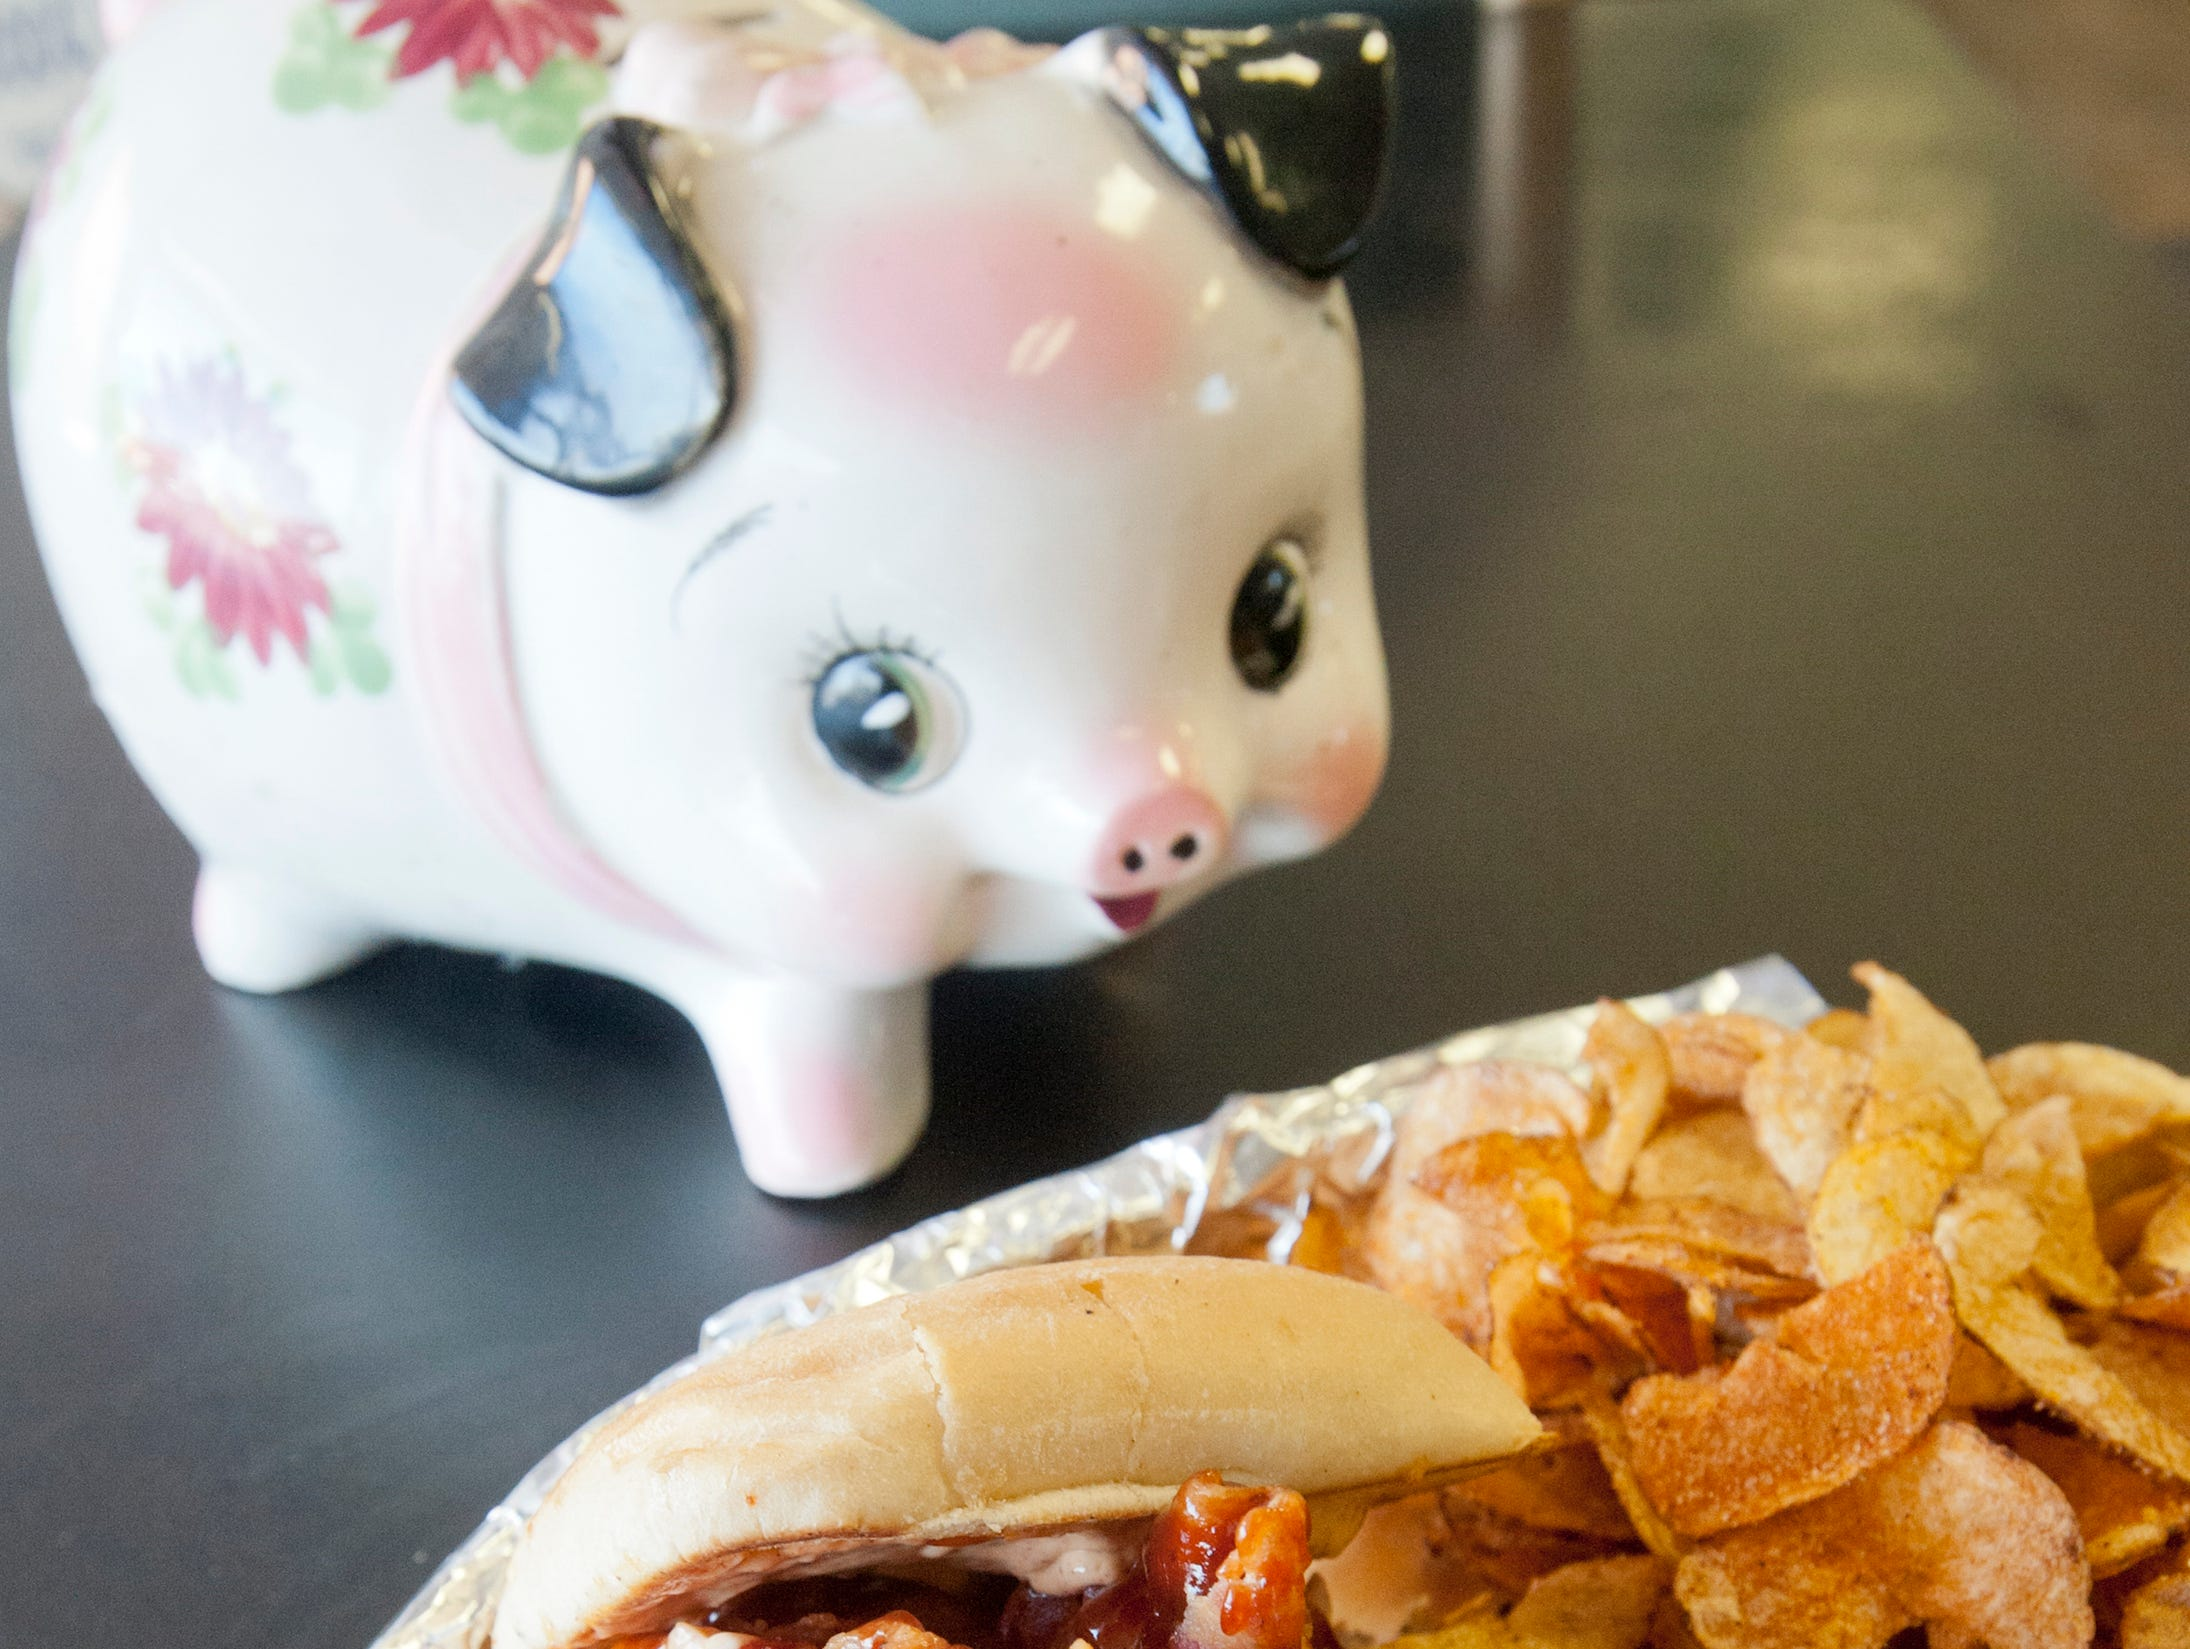 """Babie Bac'z Good Grill's Bac'z Attack sandwich is made with deep fried smoked bacon and pulled pork on a chiabbata bun topped with the eatery's original barbecue sauce. The dish is served with """"Shut Your Mouth"""" potato chips that have been flavored with the restaurant's home-made dry rub.October 24, 2018"""